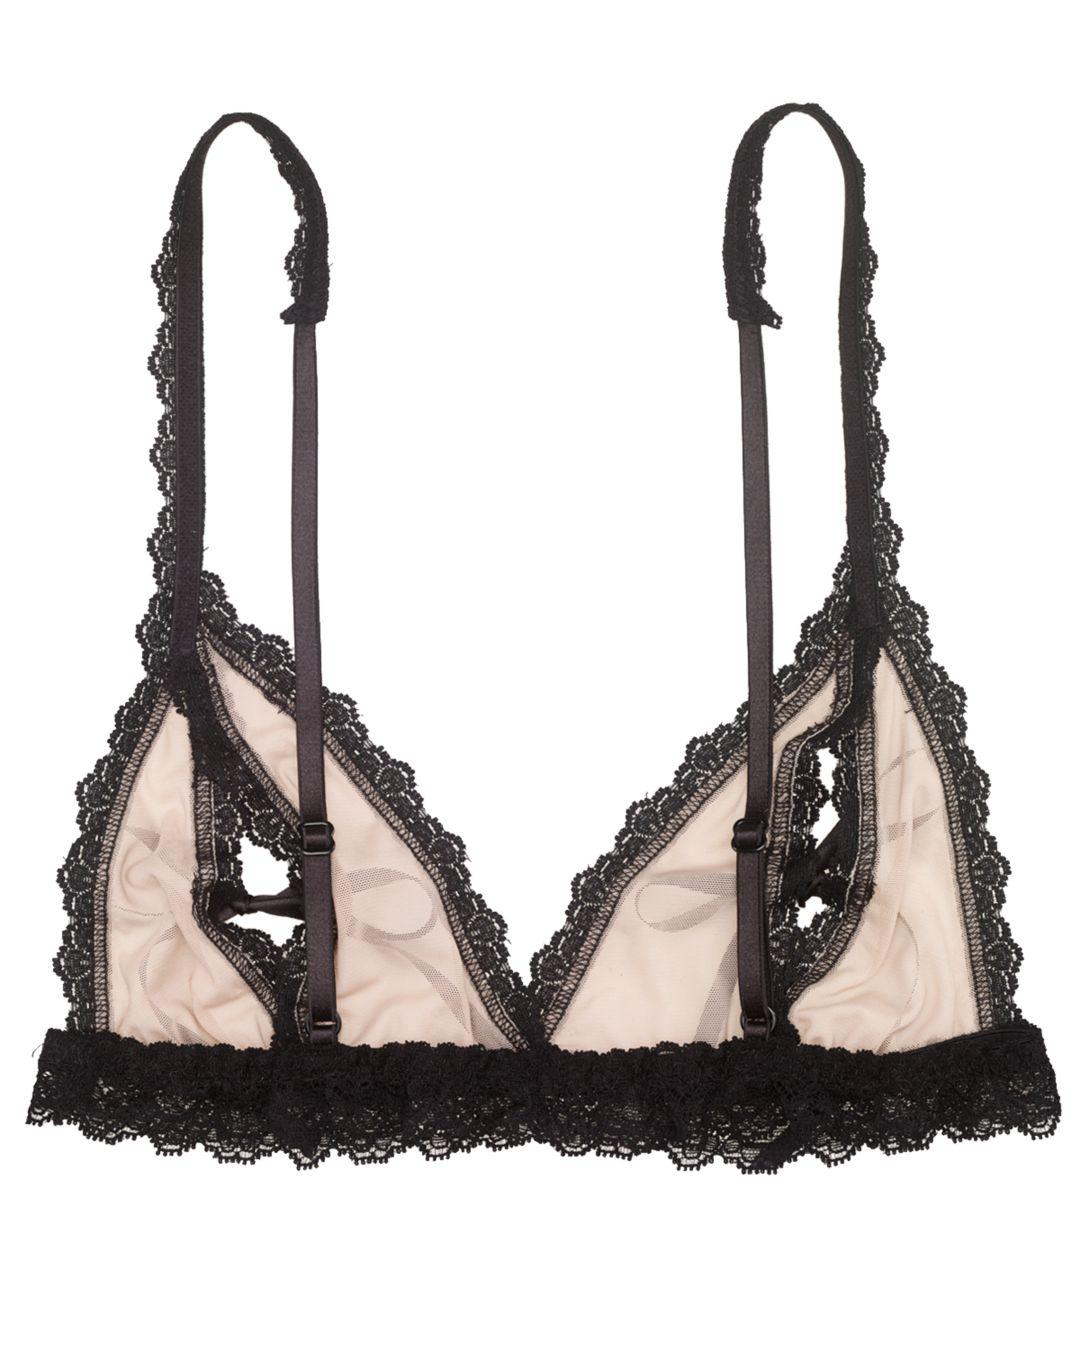 0e7570ece46ad Lyst - Hanky Panky After Midnight Stretch Tulle Peek-a-boo Bralette in  Black - Save 23%